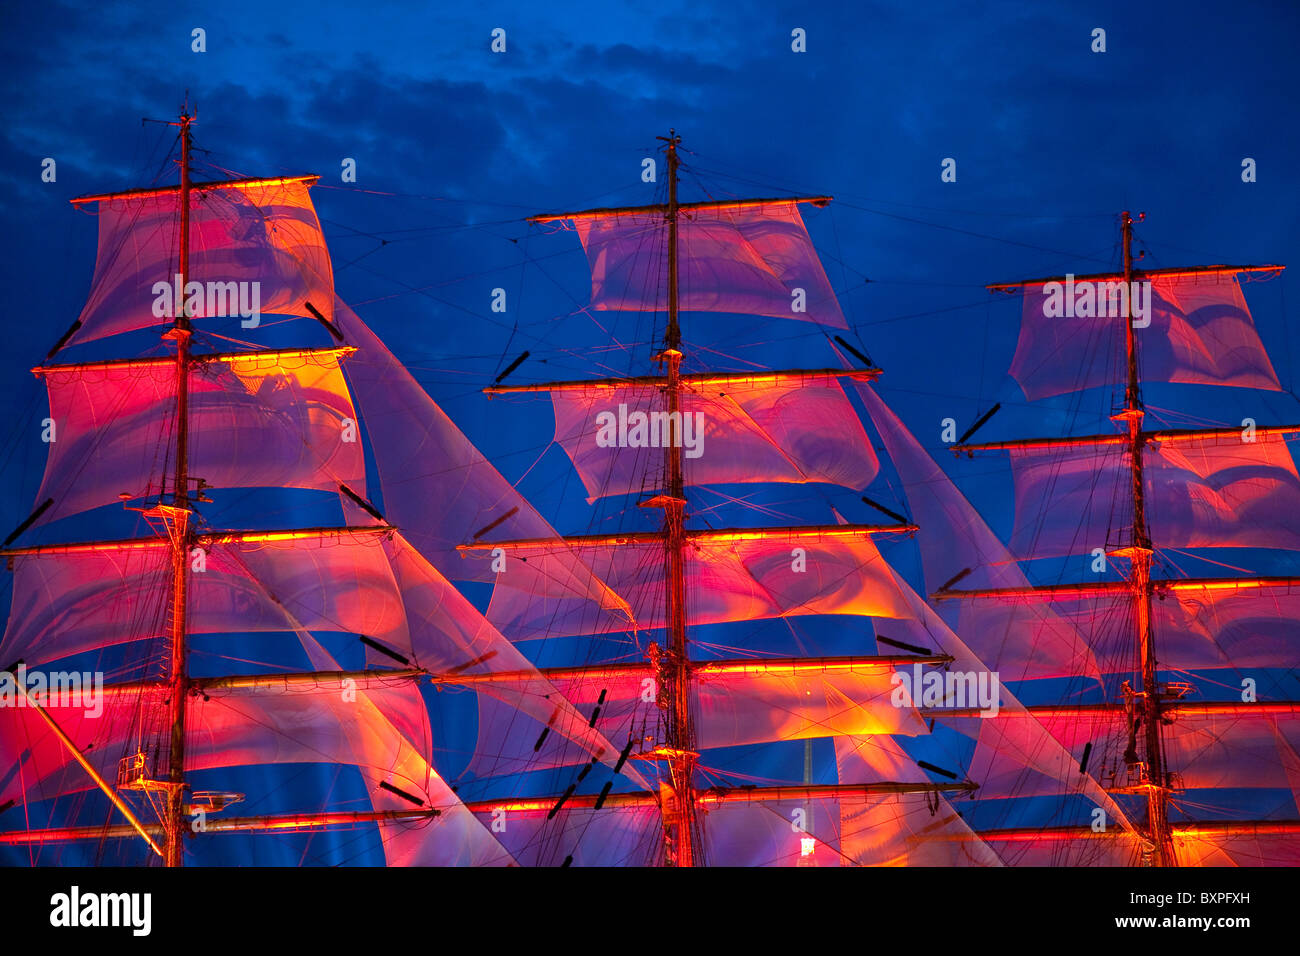 Scarlet sails, Neva river, Saint-Petersburg, Russia - Stock Image